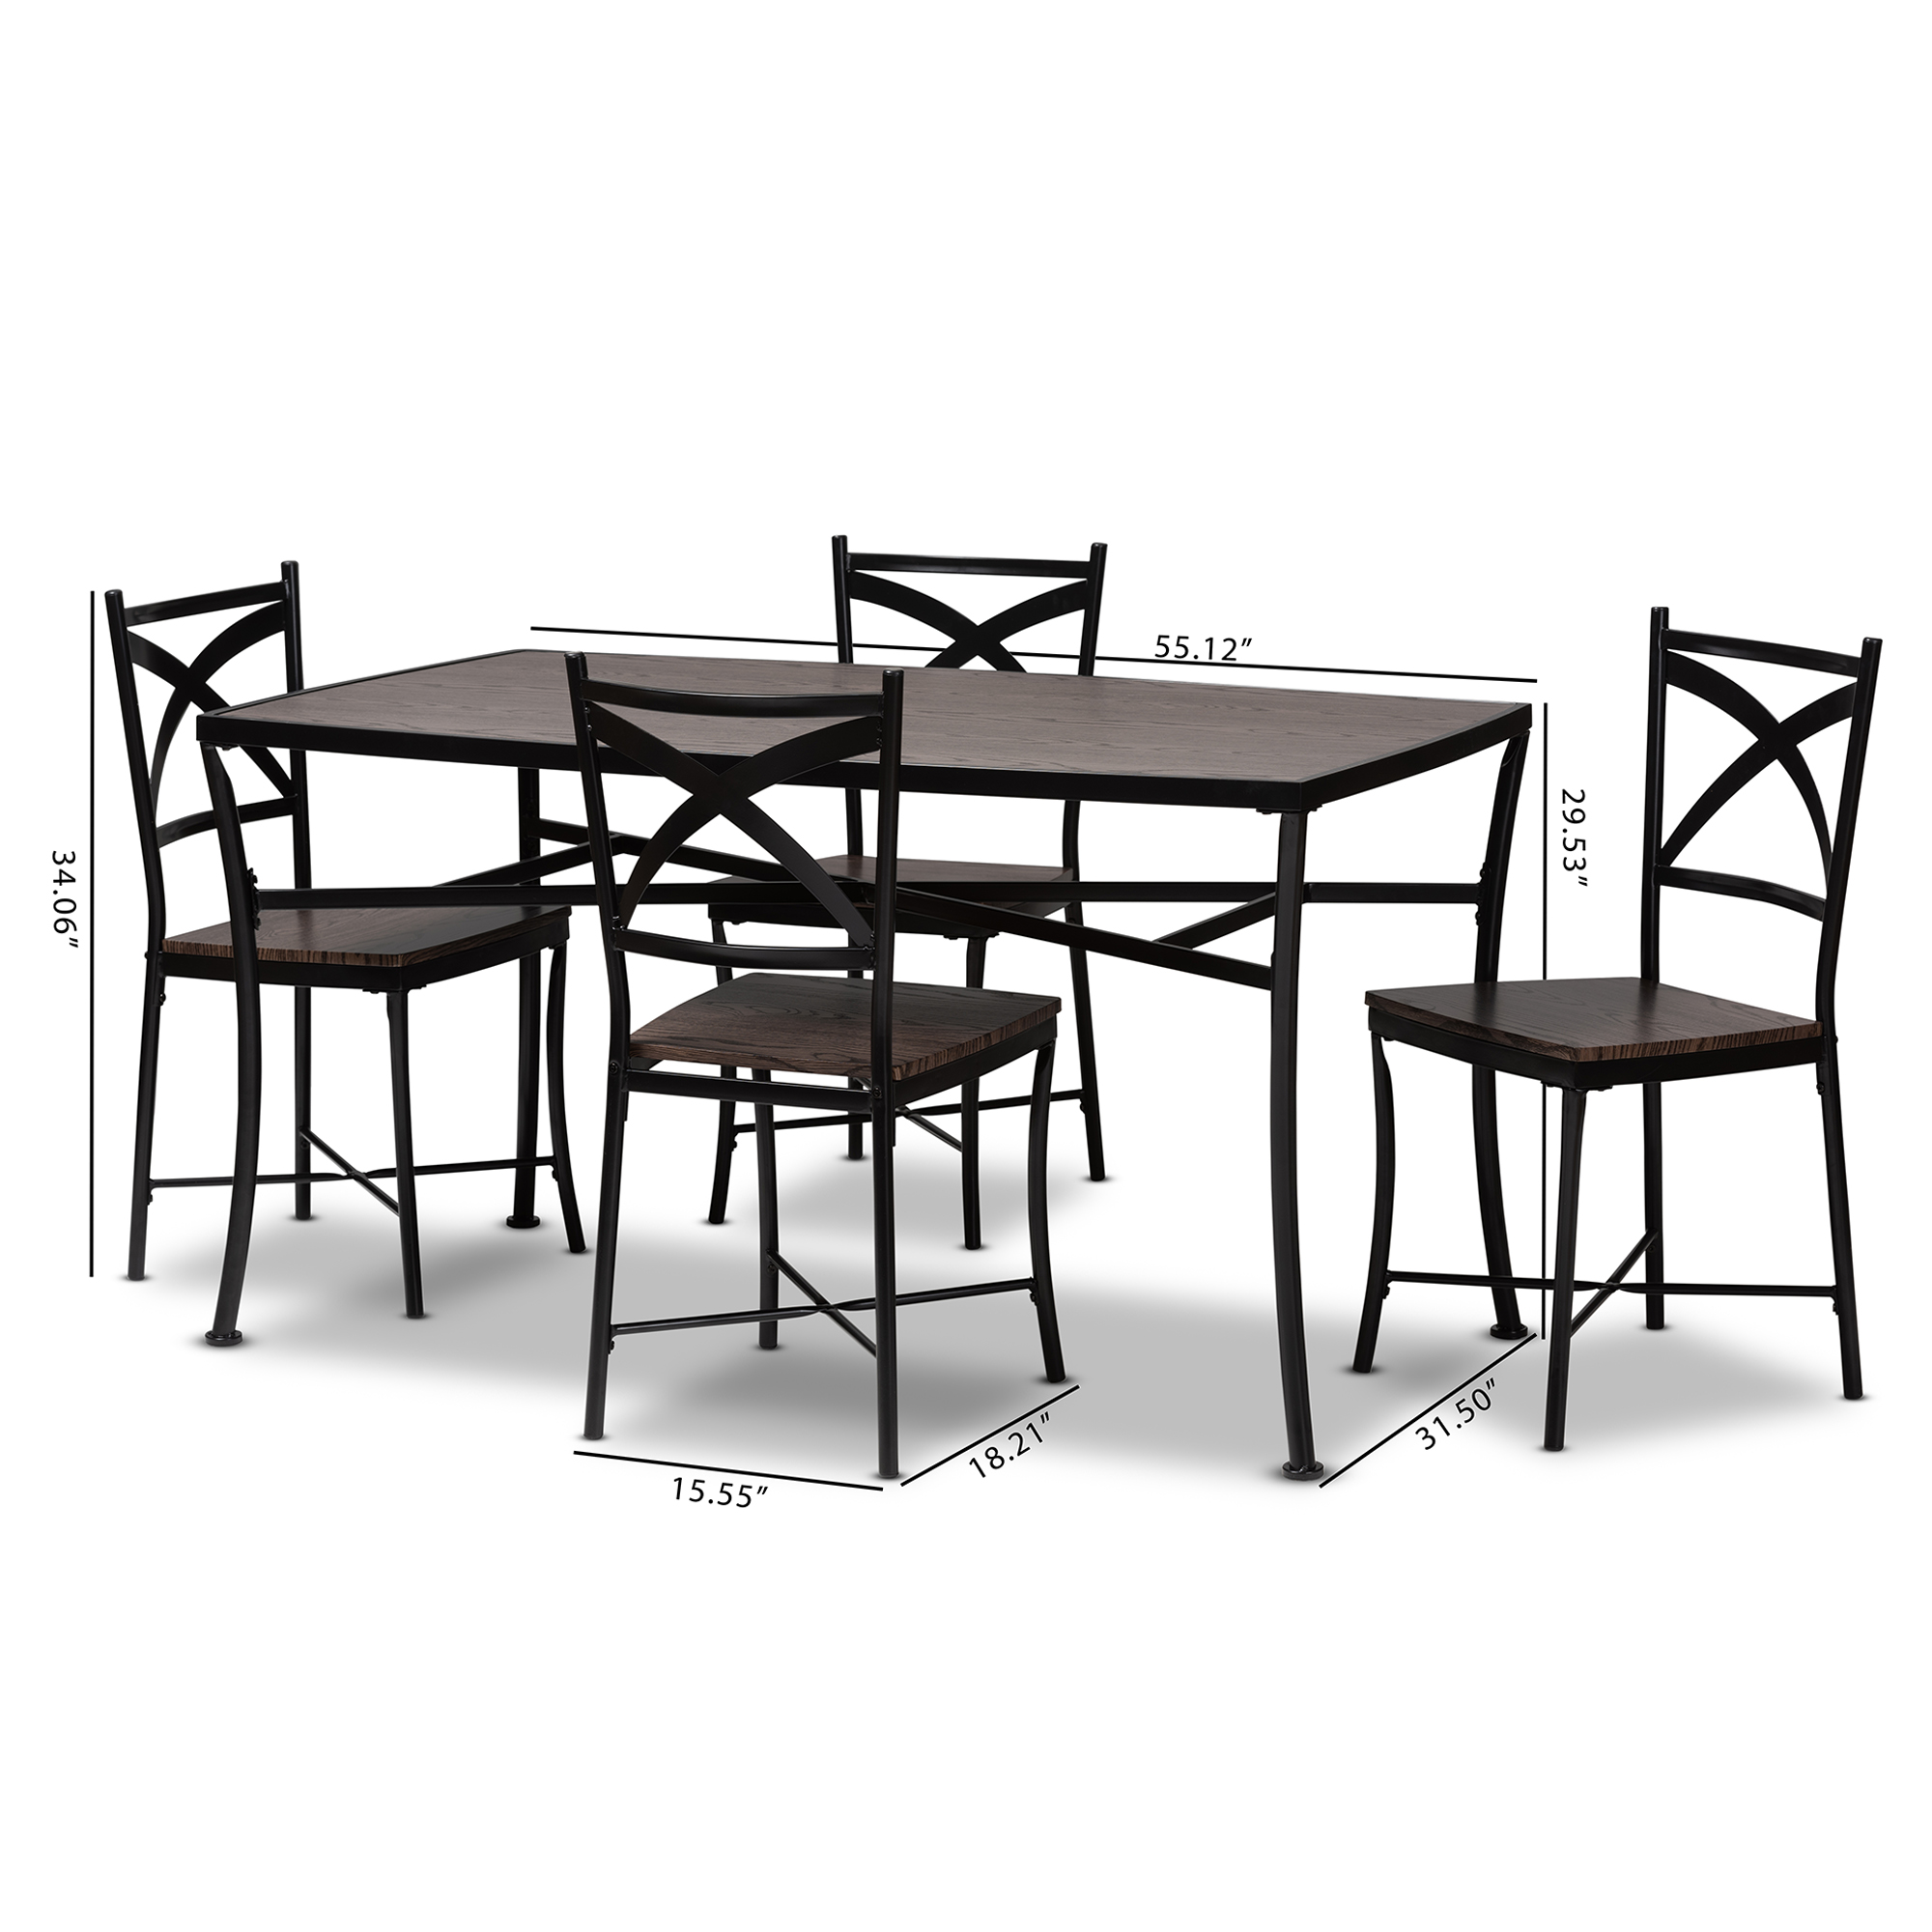 ... Baxton Studio Josie Rustic And Industrial Brown Wood Finished Matte  Black Frame 5 Piece Dining